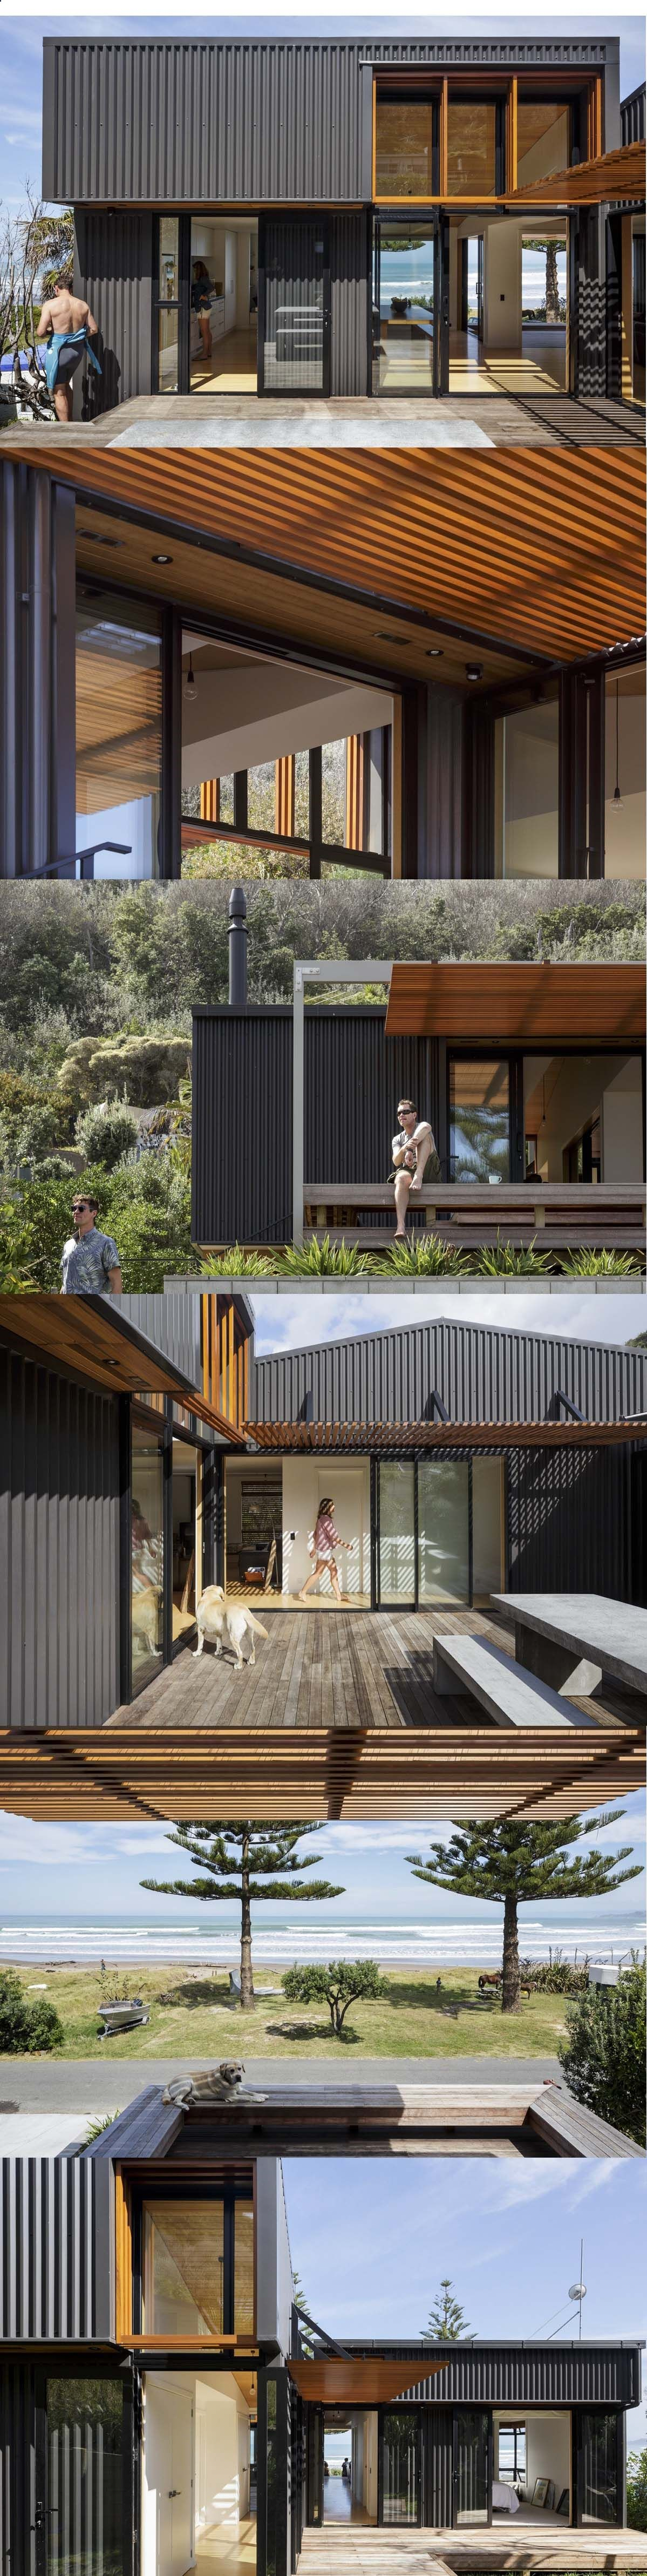 Container house interconnecting sheds combine to create beachside